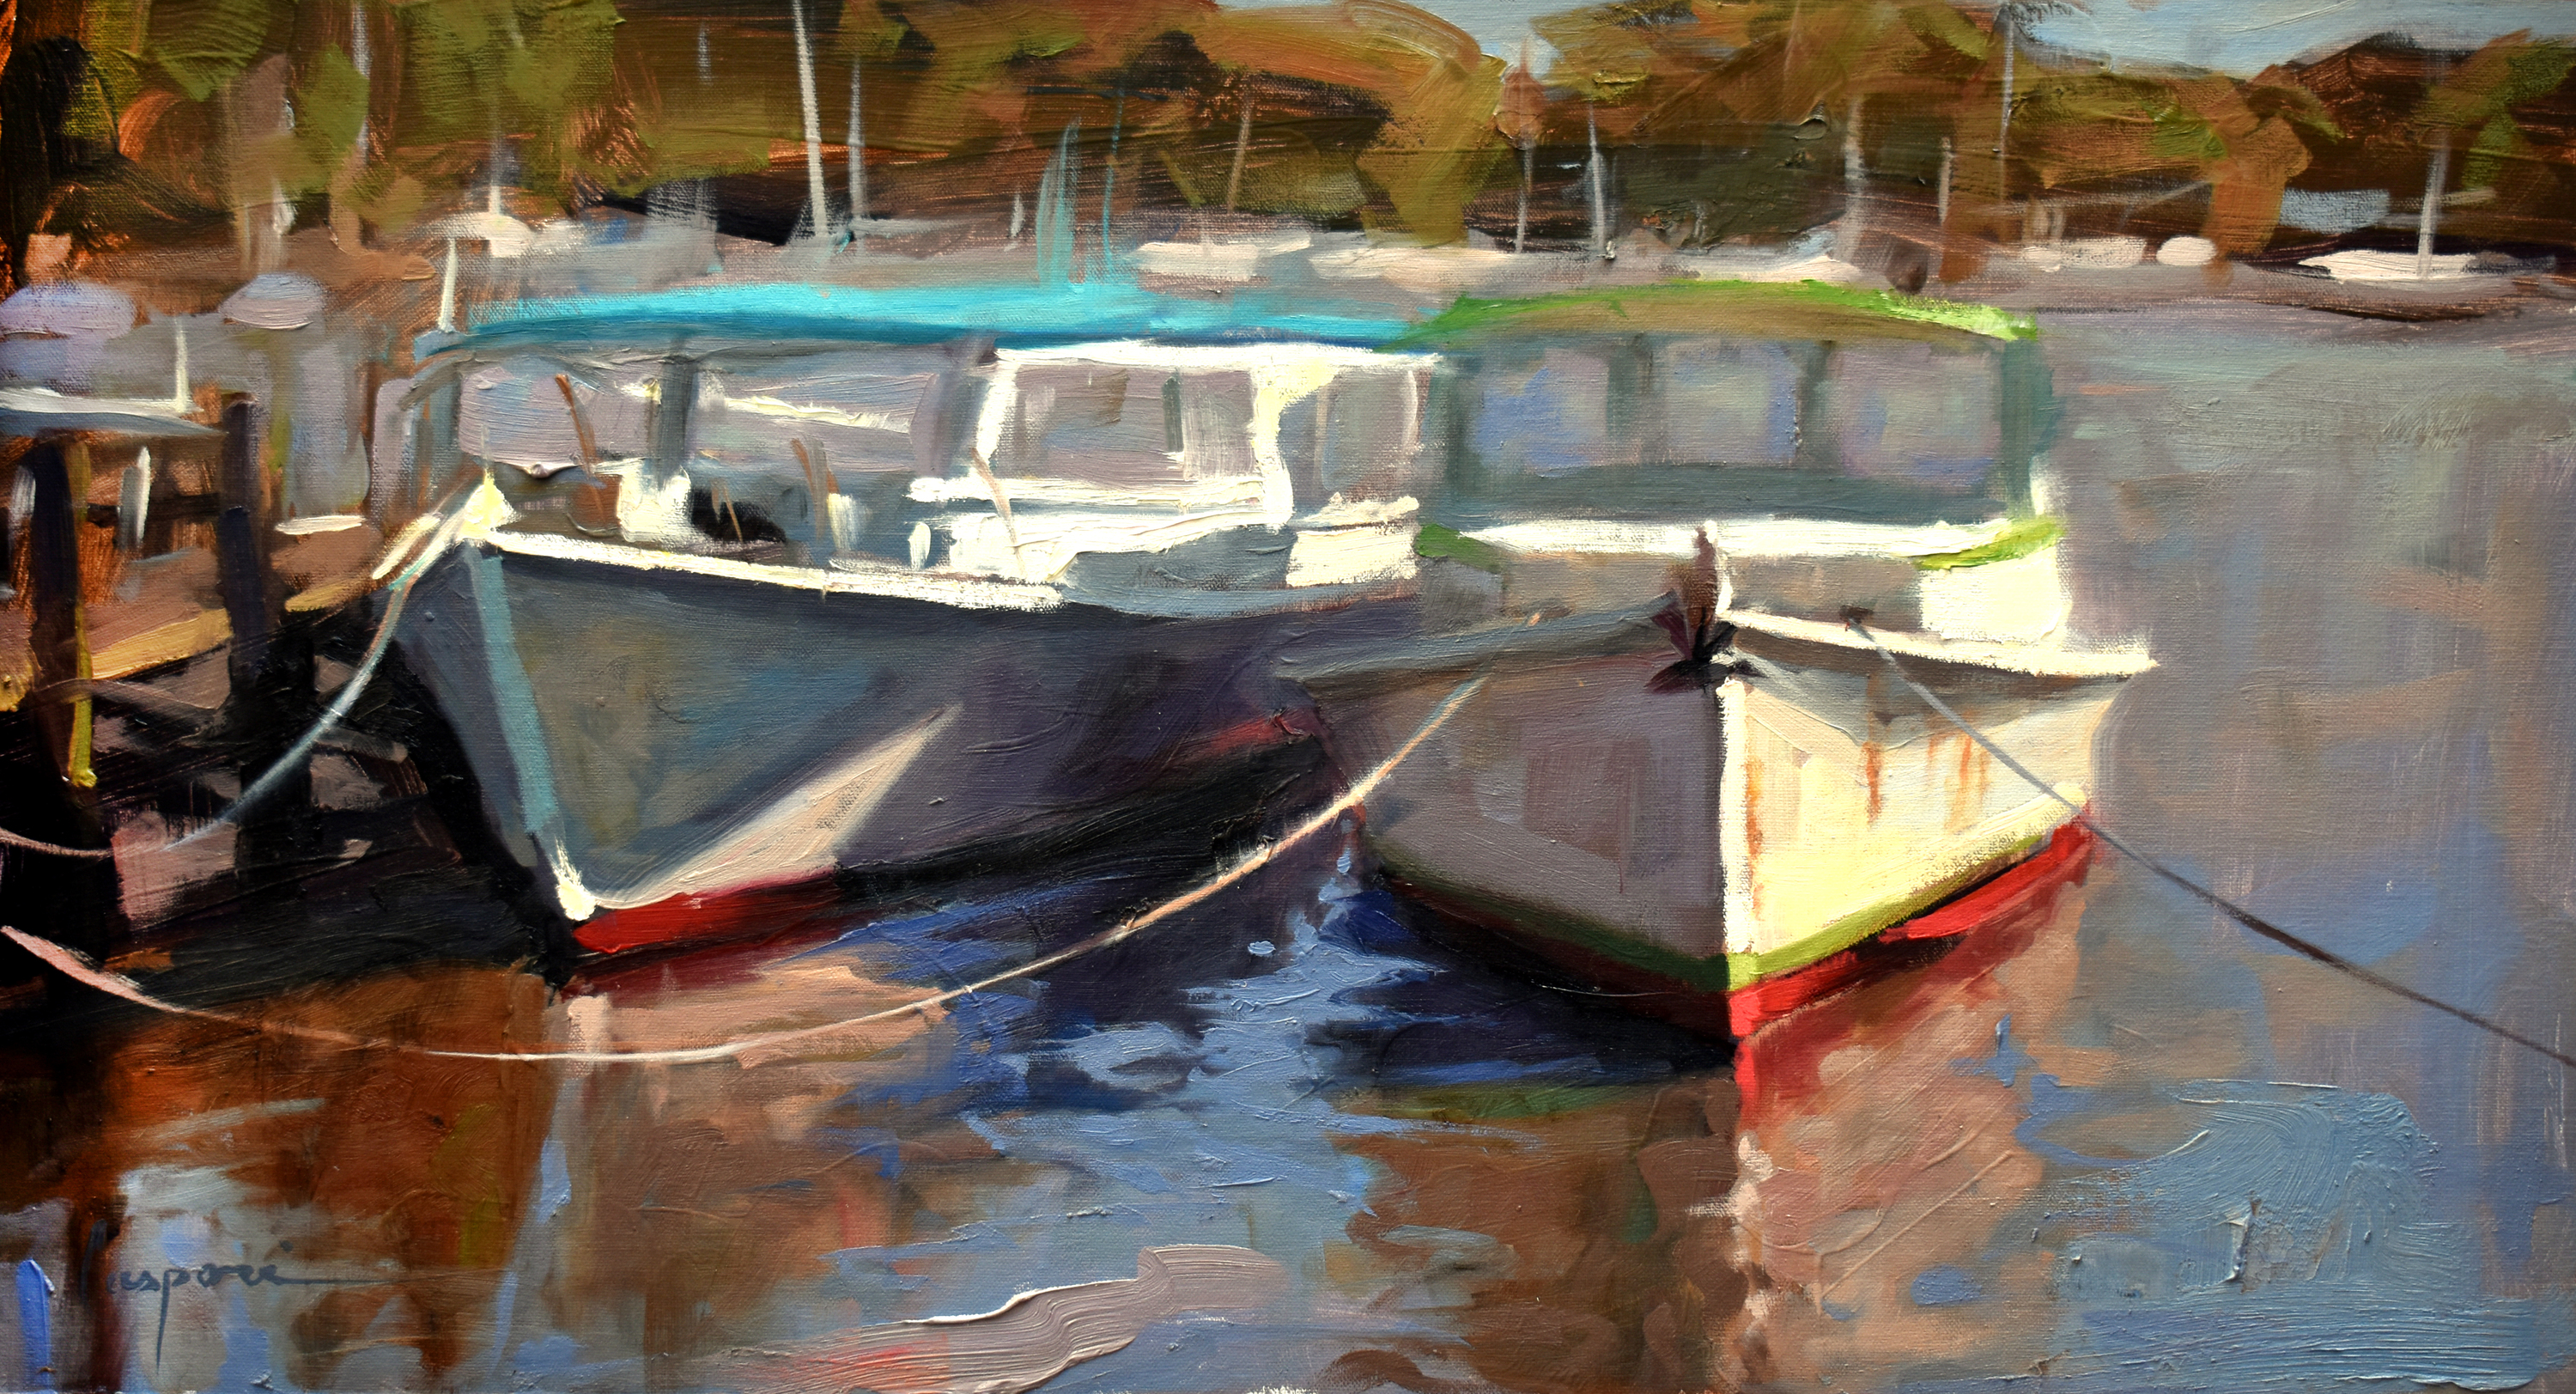 Lunch boats 24x13 oil 2020 bt9nf2